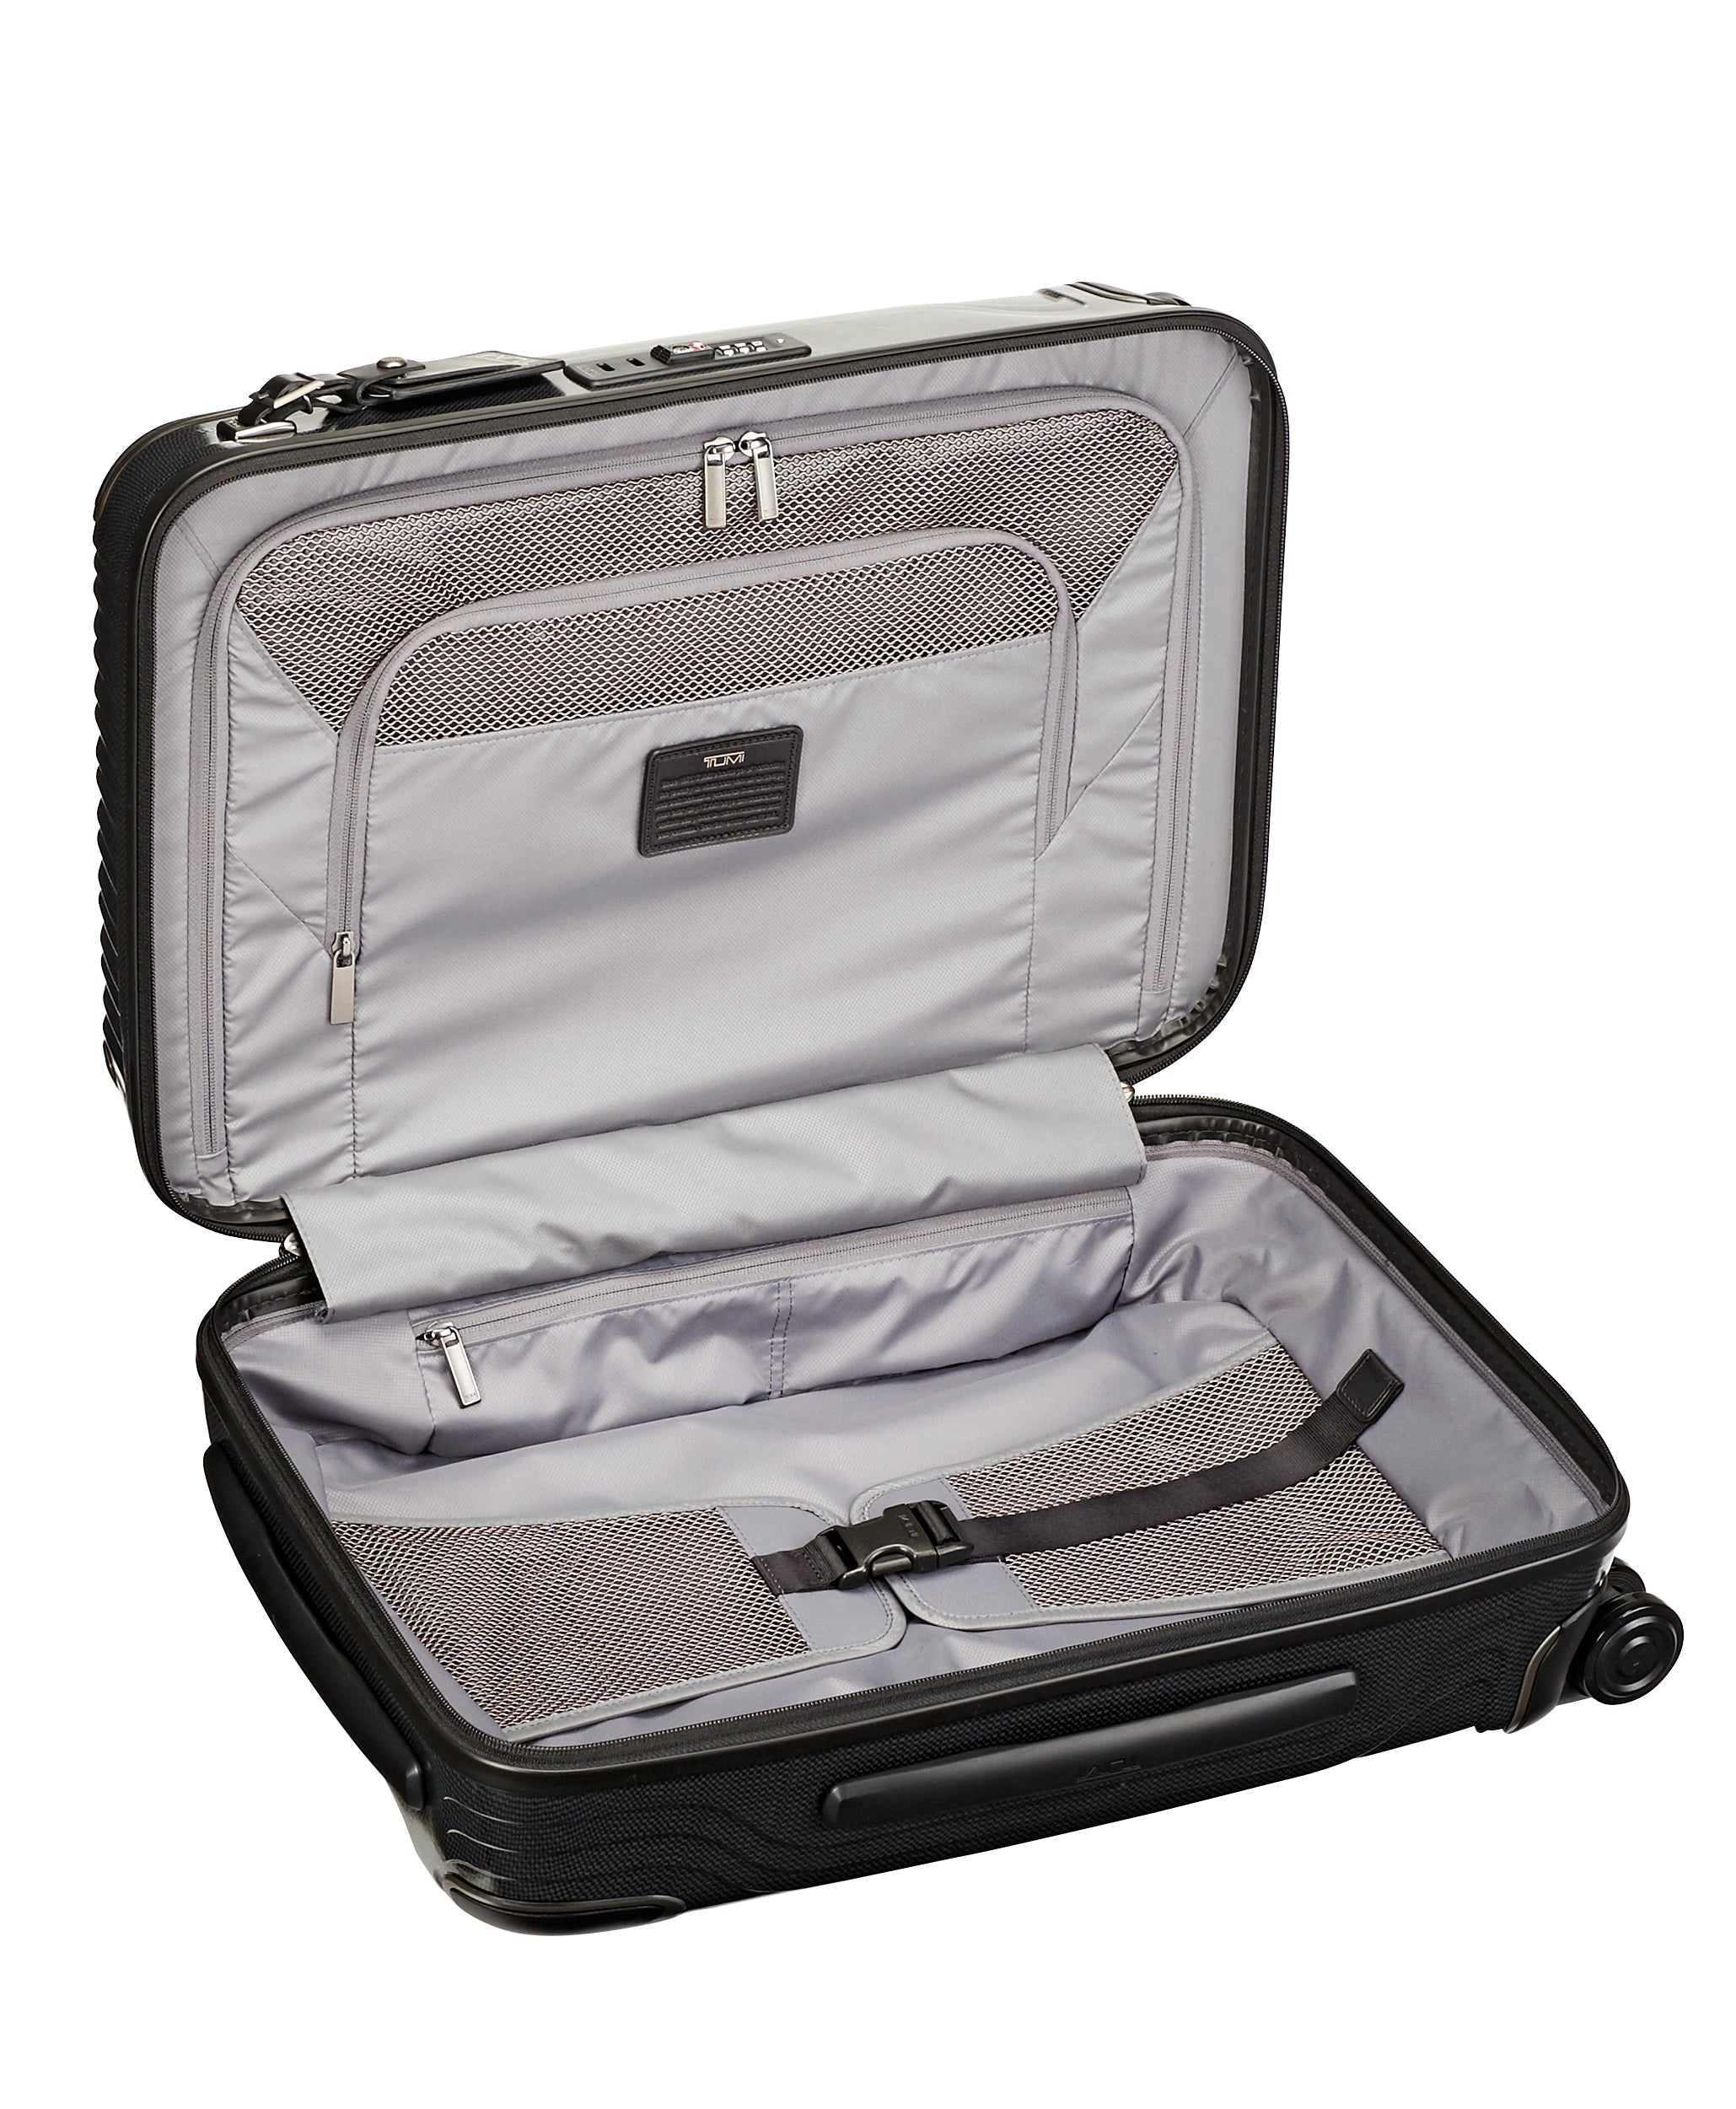 Tumi Latitude International Carry-On - Black | MEGO